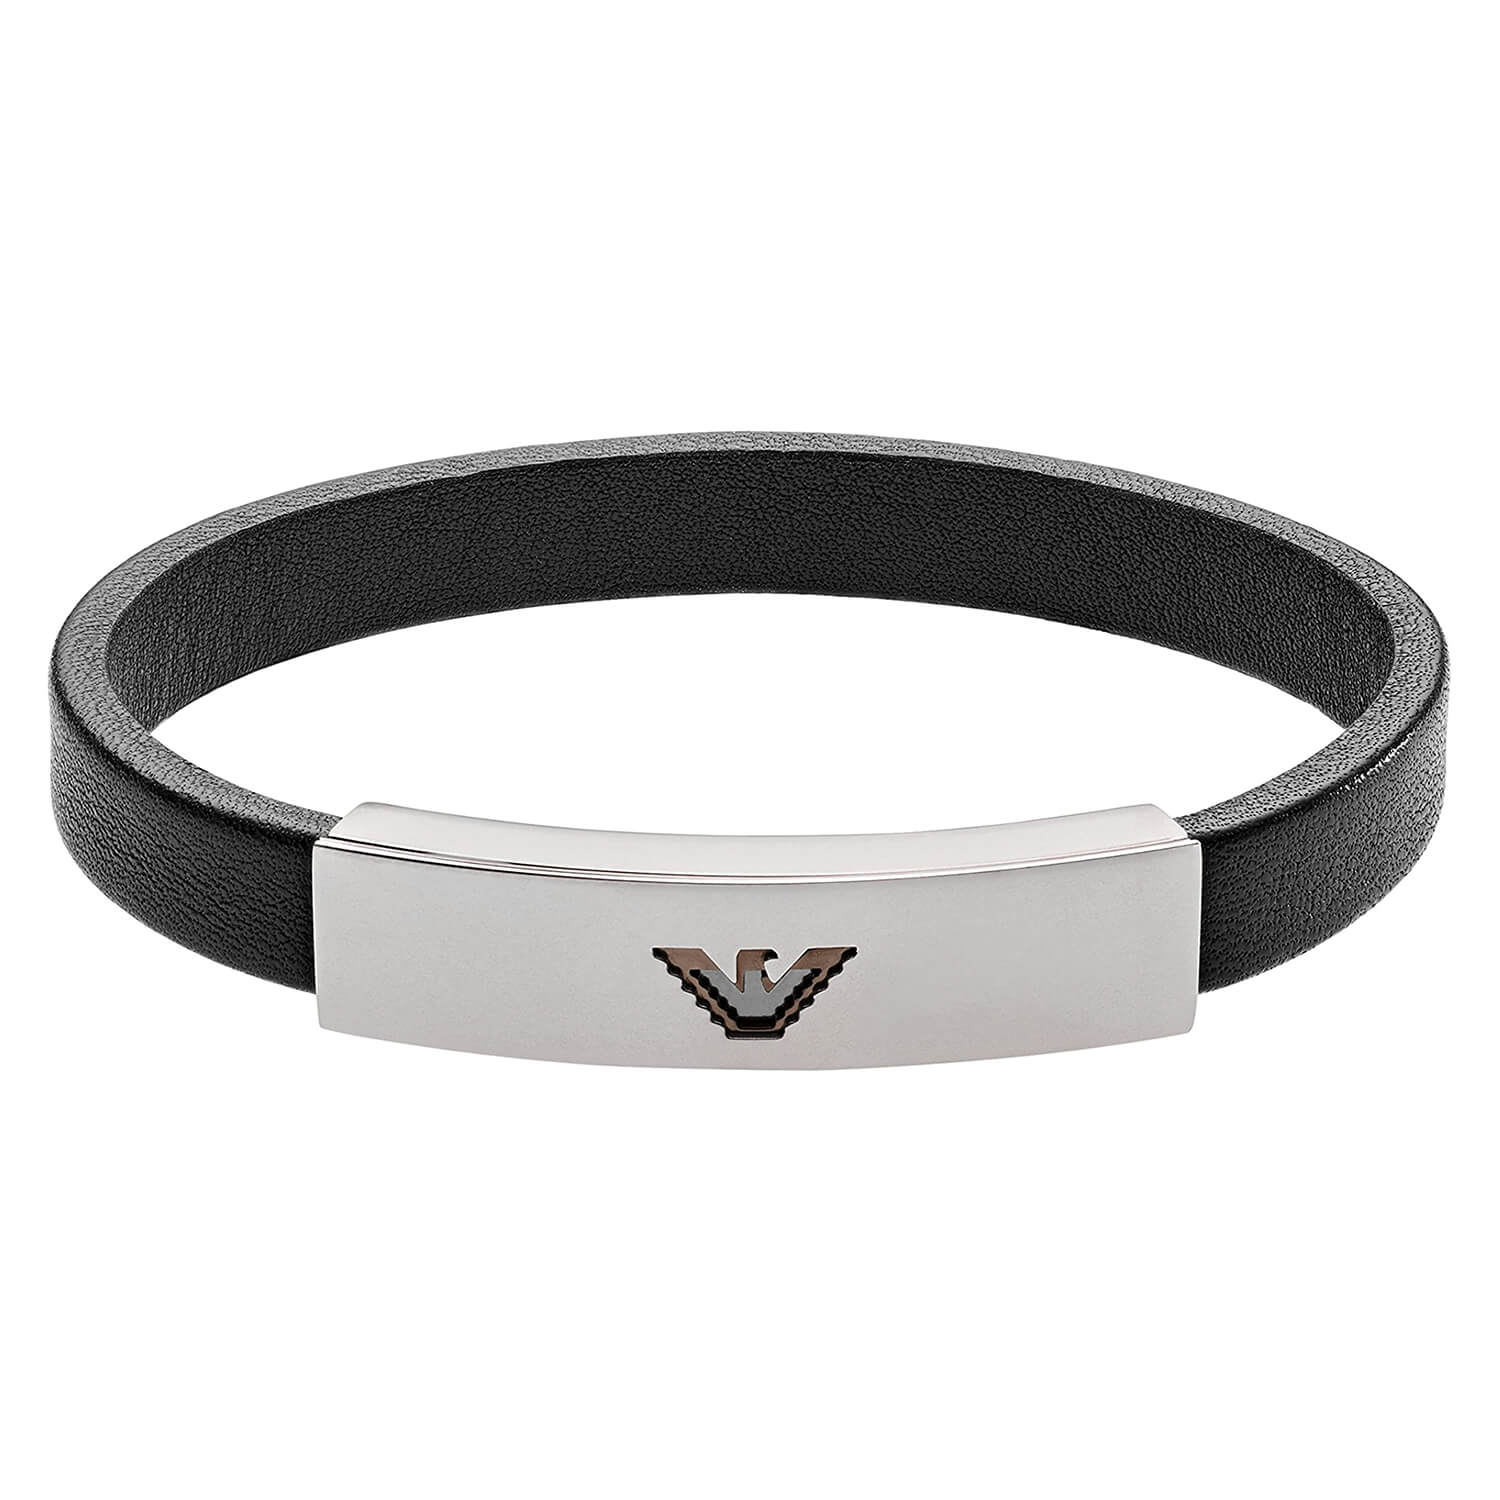 Emporio Armani Signature Black Leather Stainless Steel Logo Bracelet